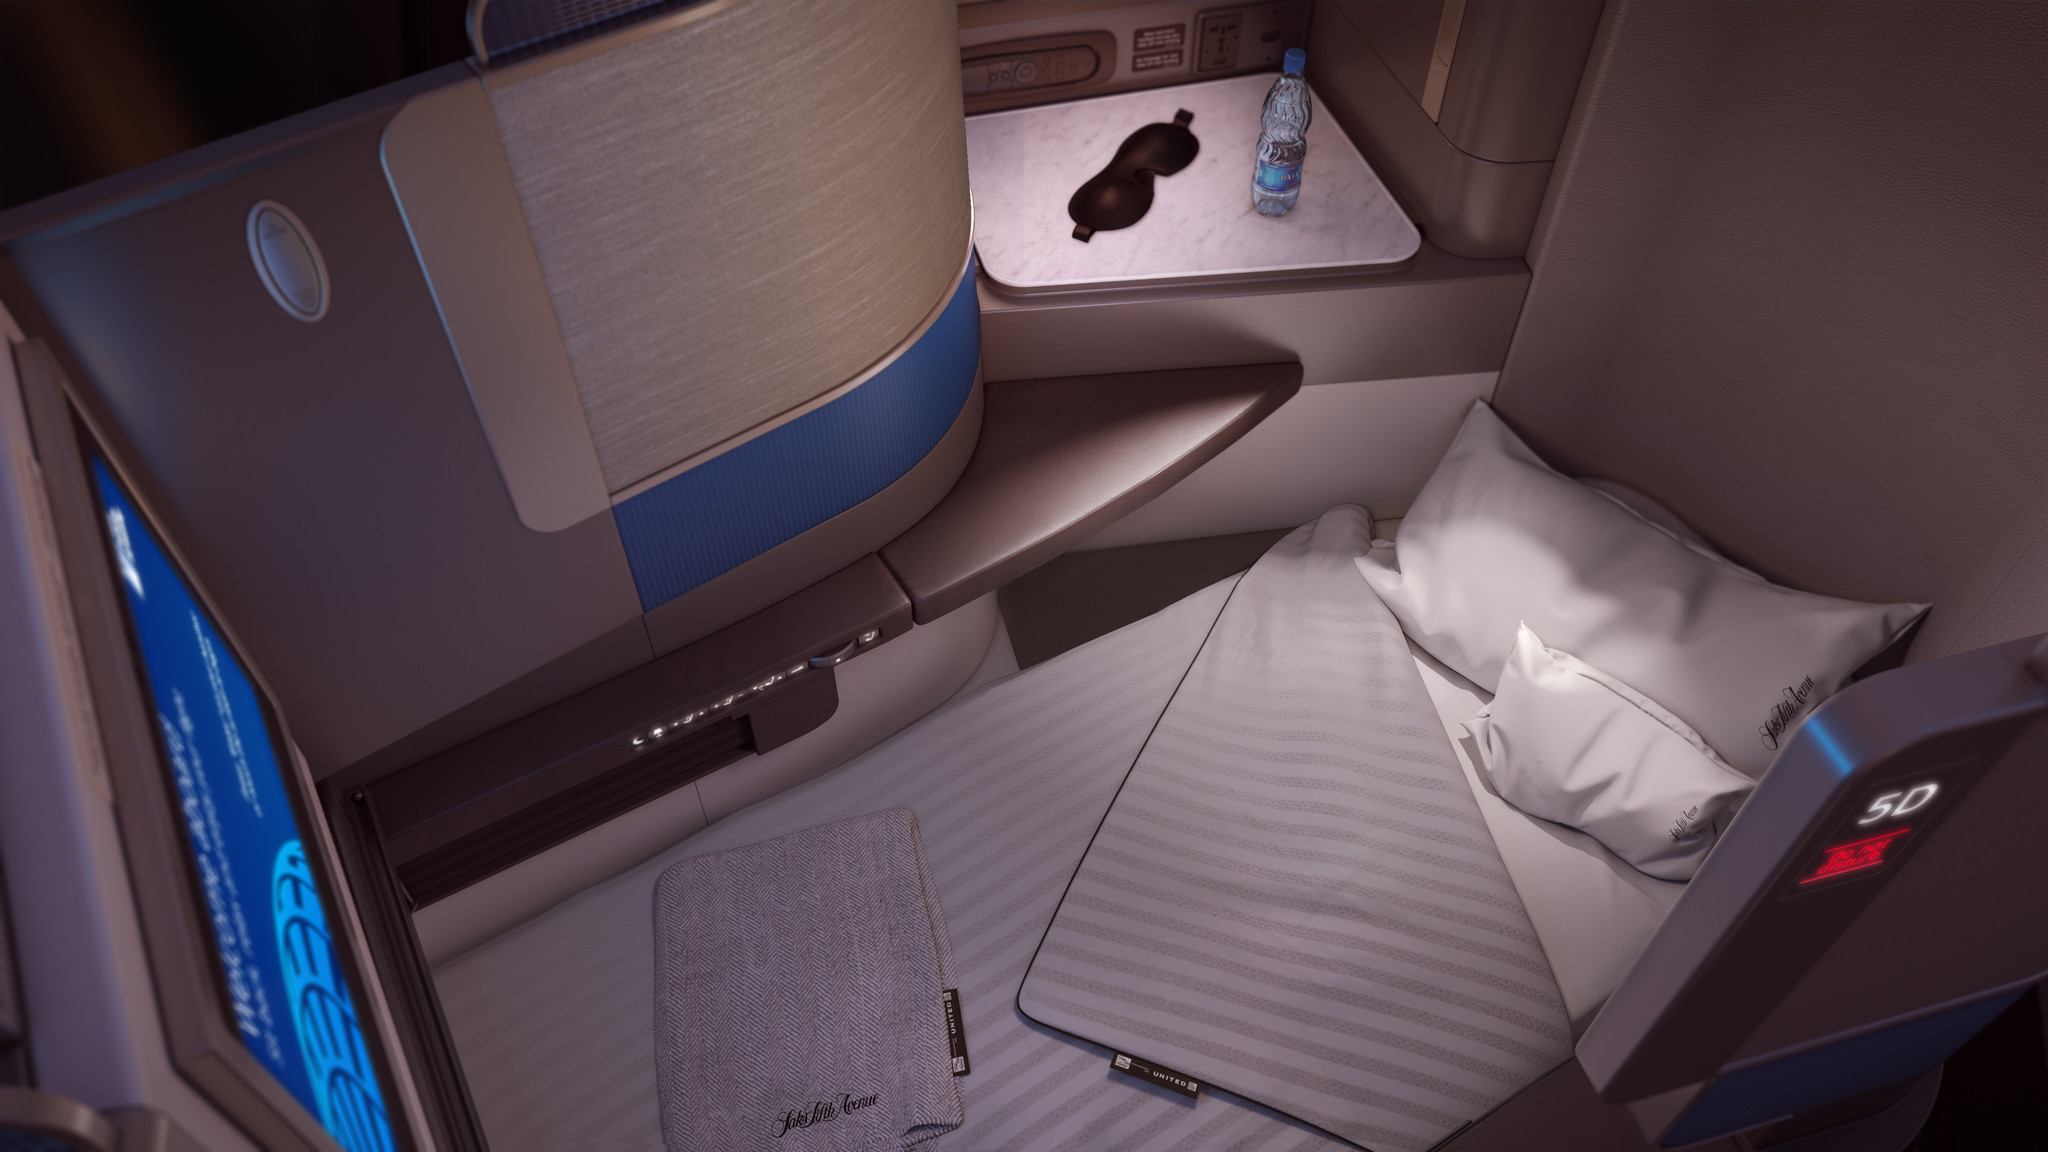 United Upgrades Business Class Amenities On Long Flights